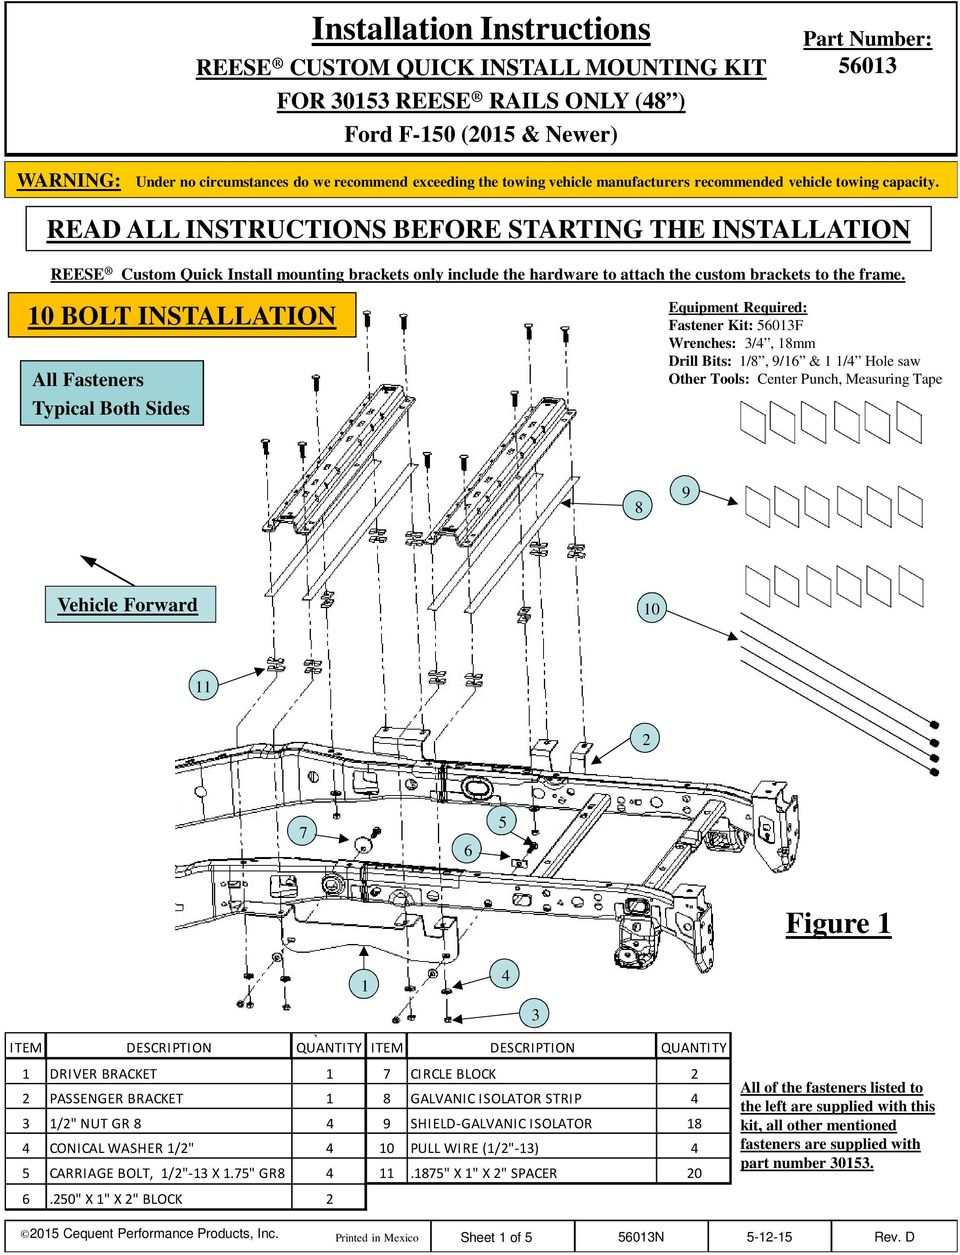 READ ALL INSTRUCTIONS BEFORE STARTING THE INSTALLATION REESE Custom Quick Install mounting brackets only include the hardware to attach the custom brackets to the frame.